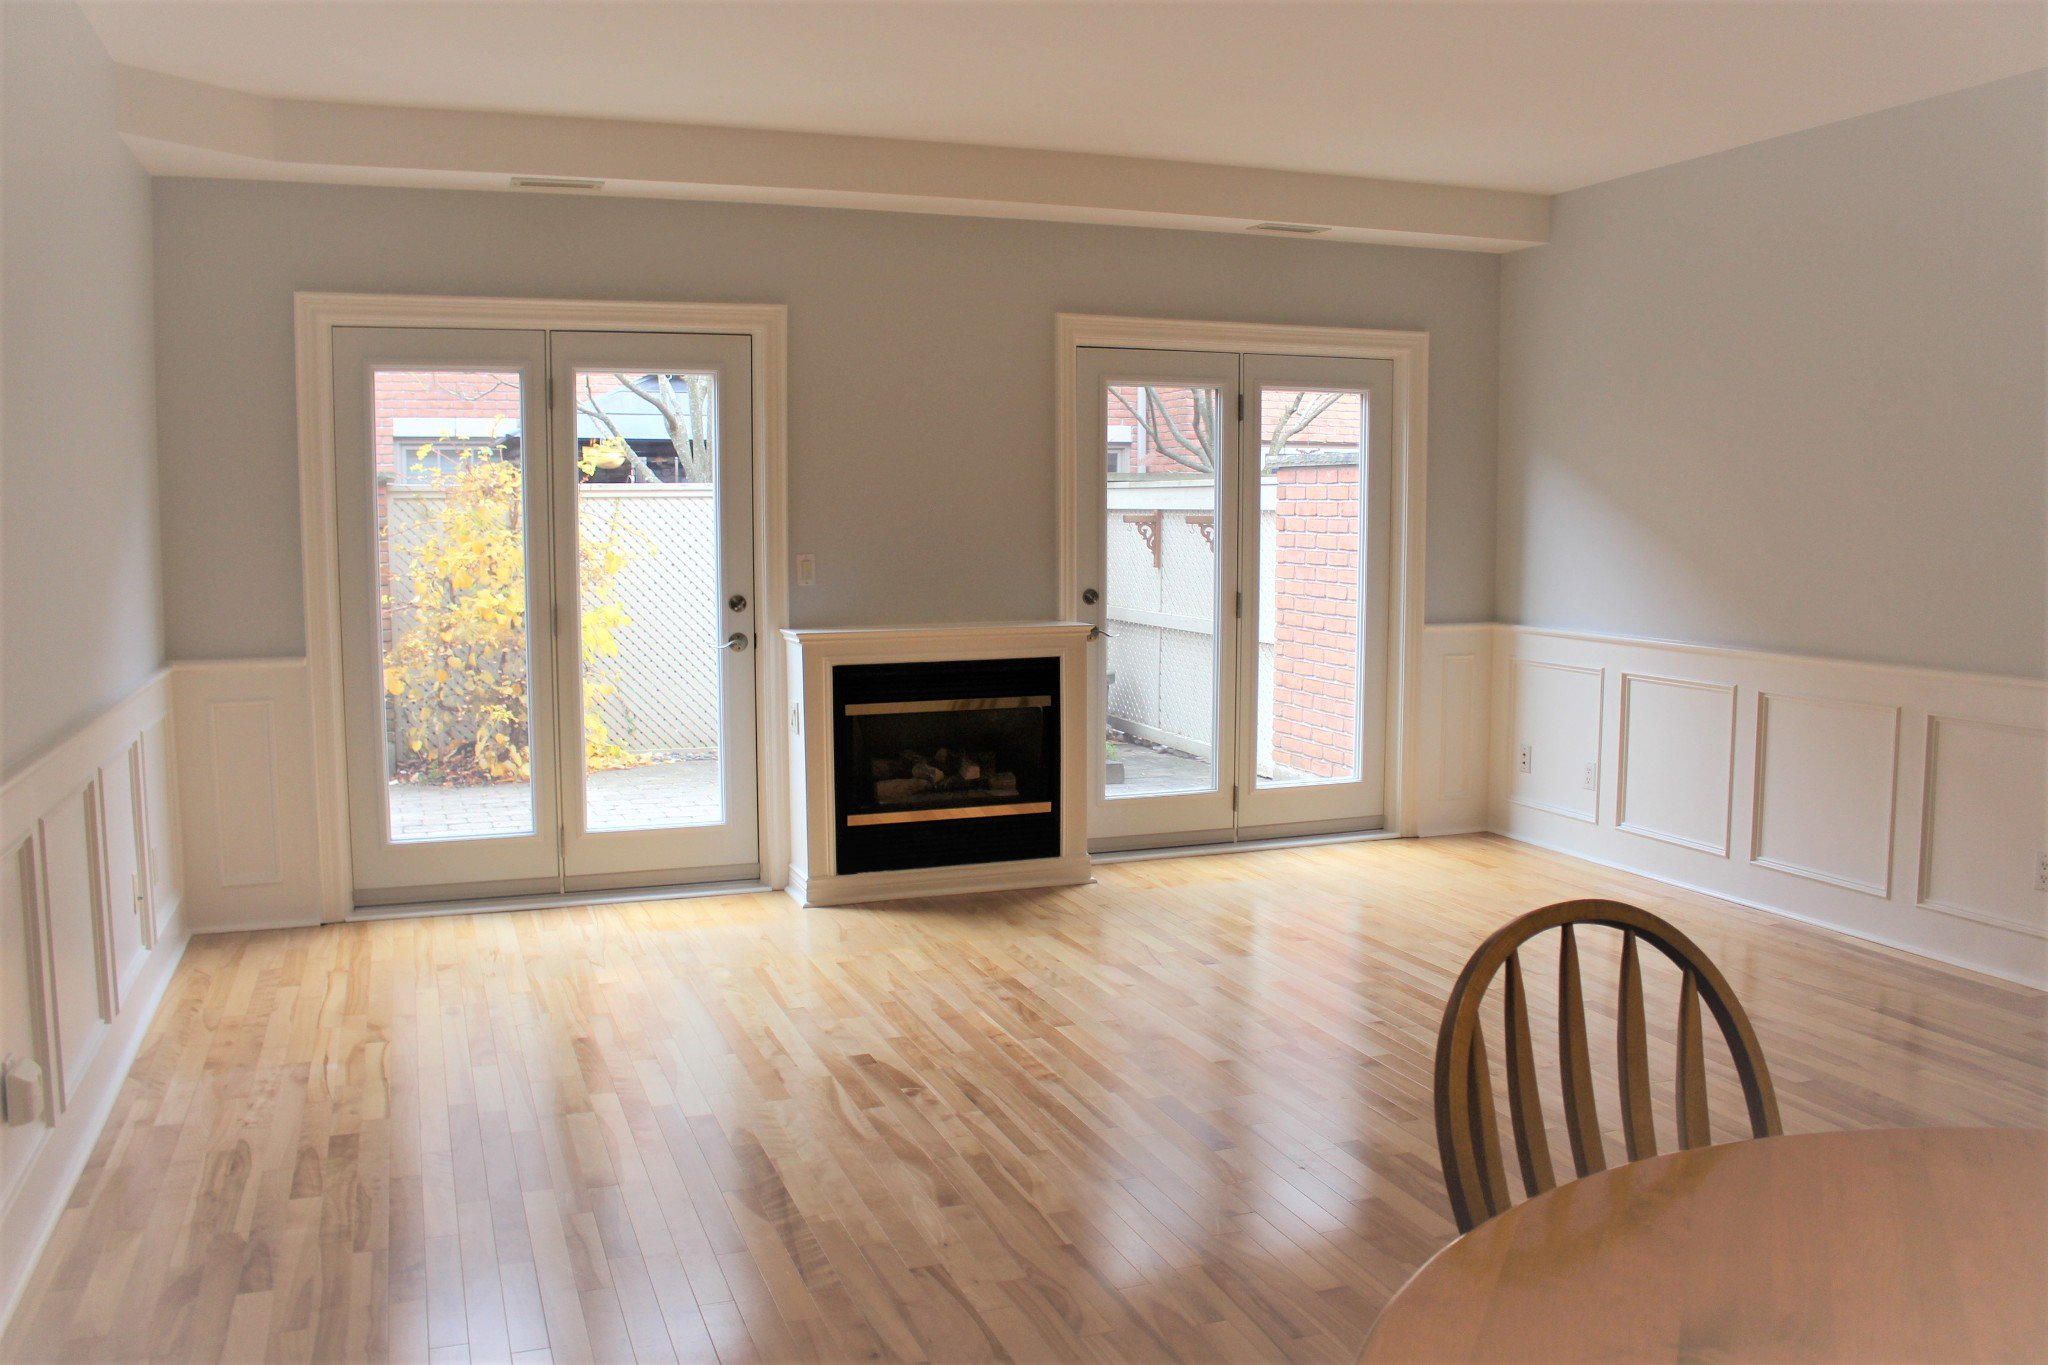 Photo 17: Photos: 102 Maria's Quay in Cobourg: Residential Attached for sale : MLS®# 230864